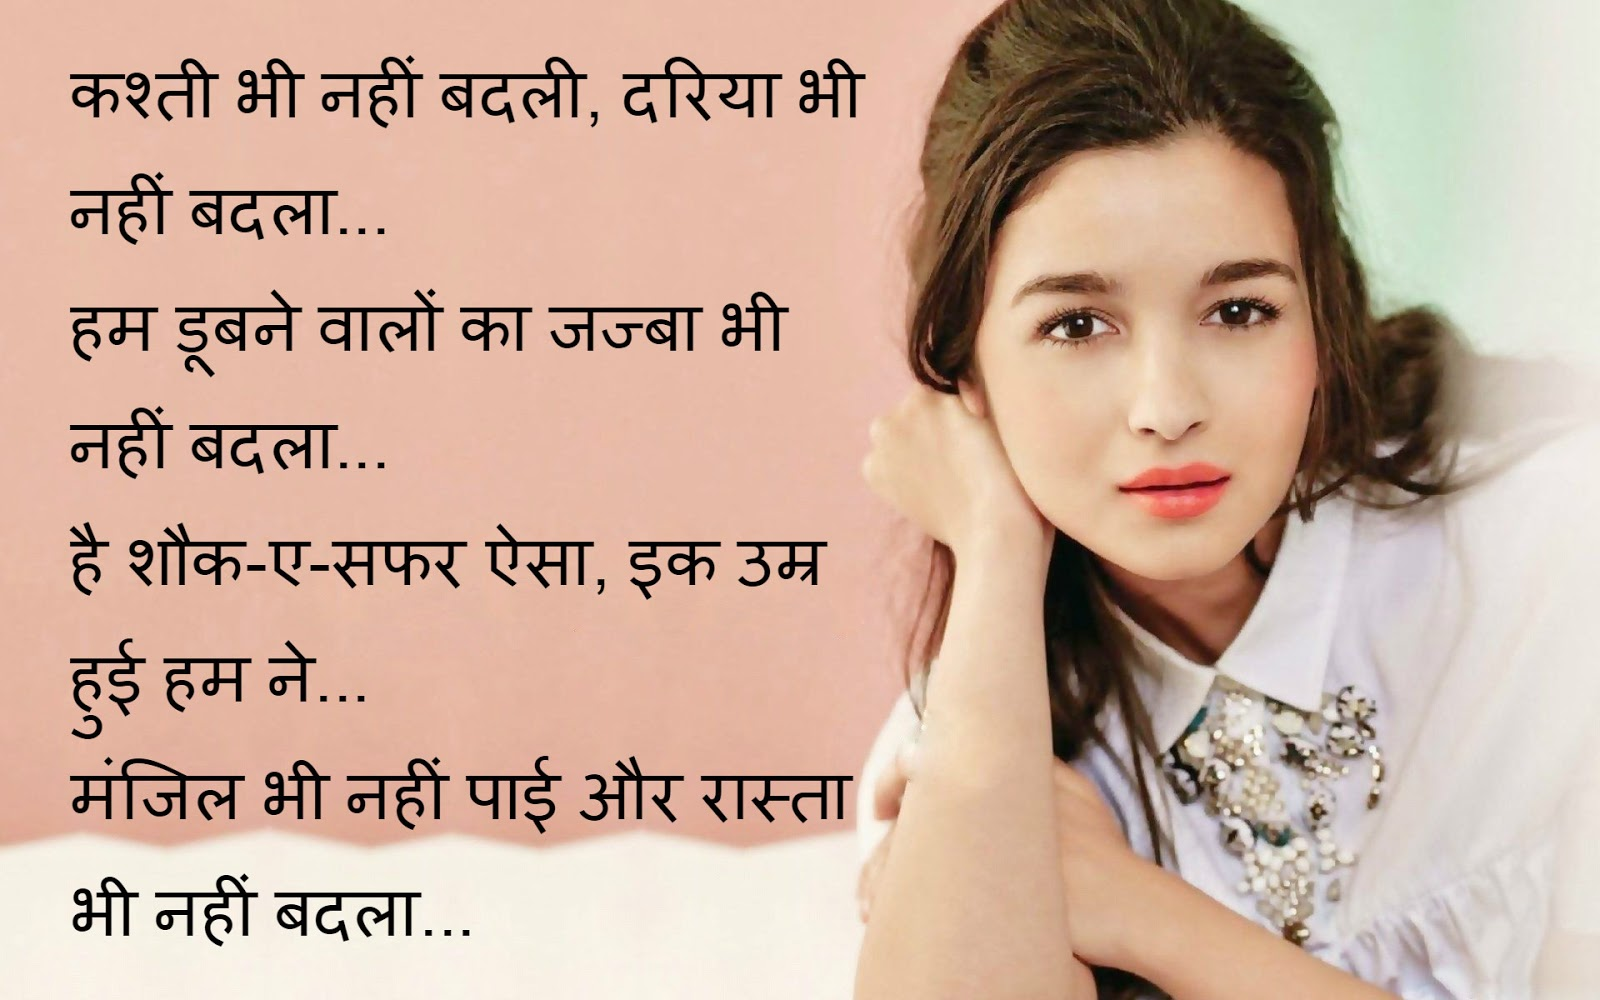 top romantic love shayari in hindi free download 2018 pic latest